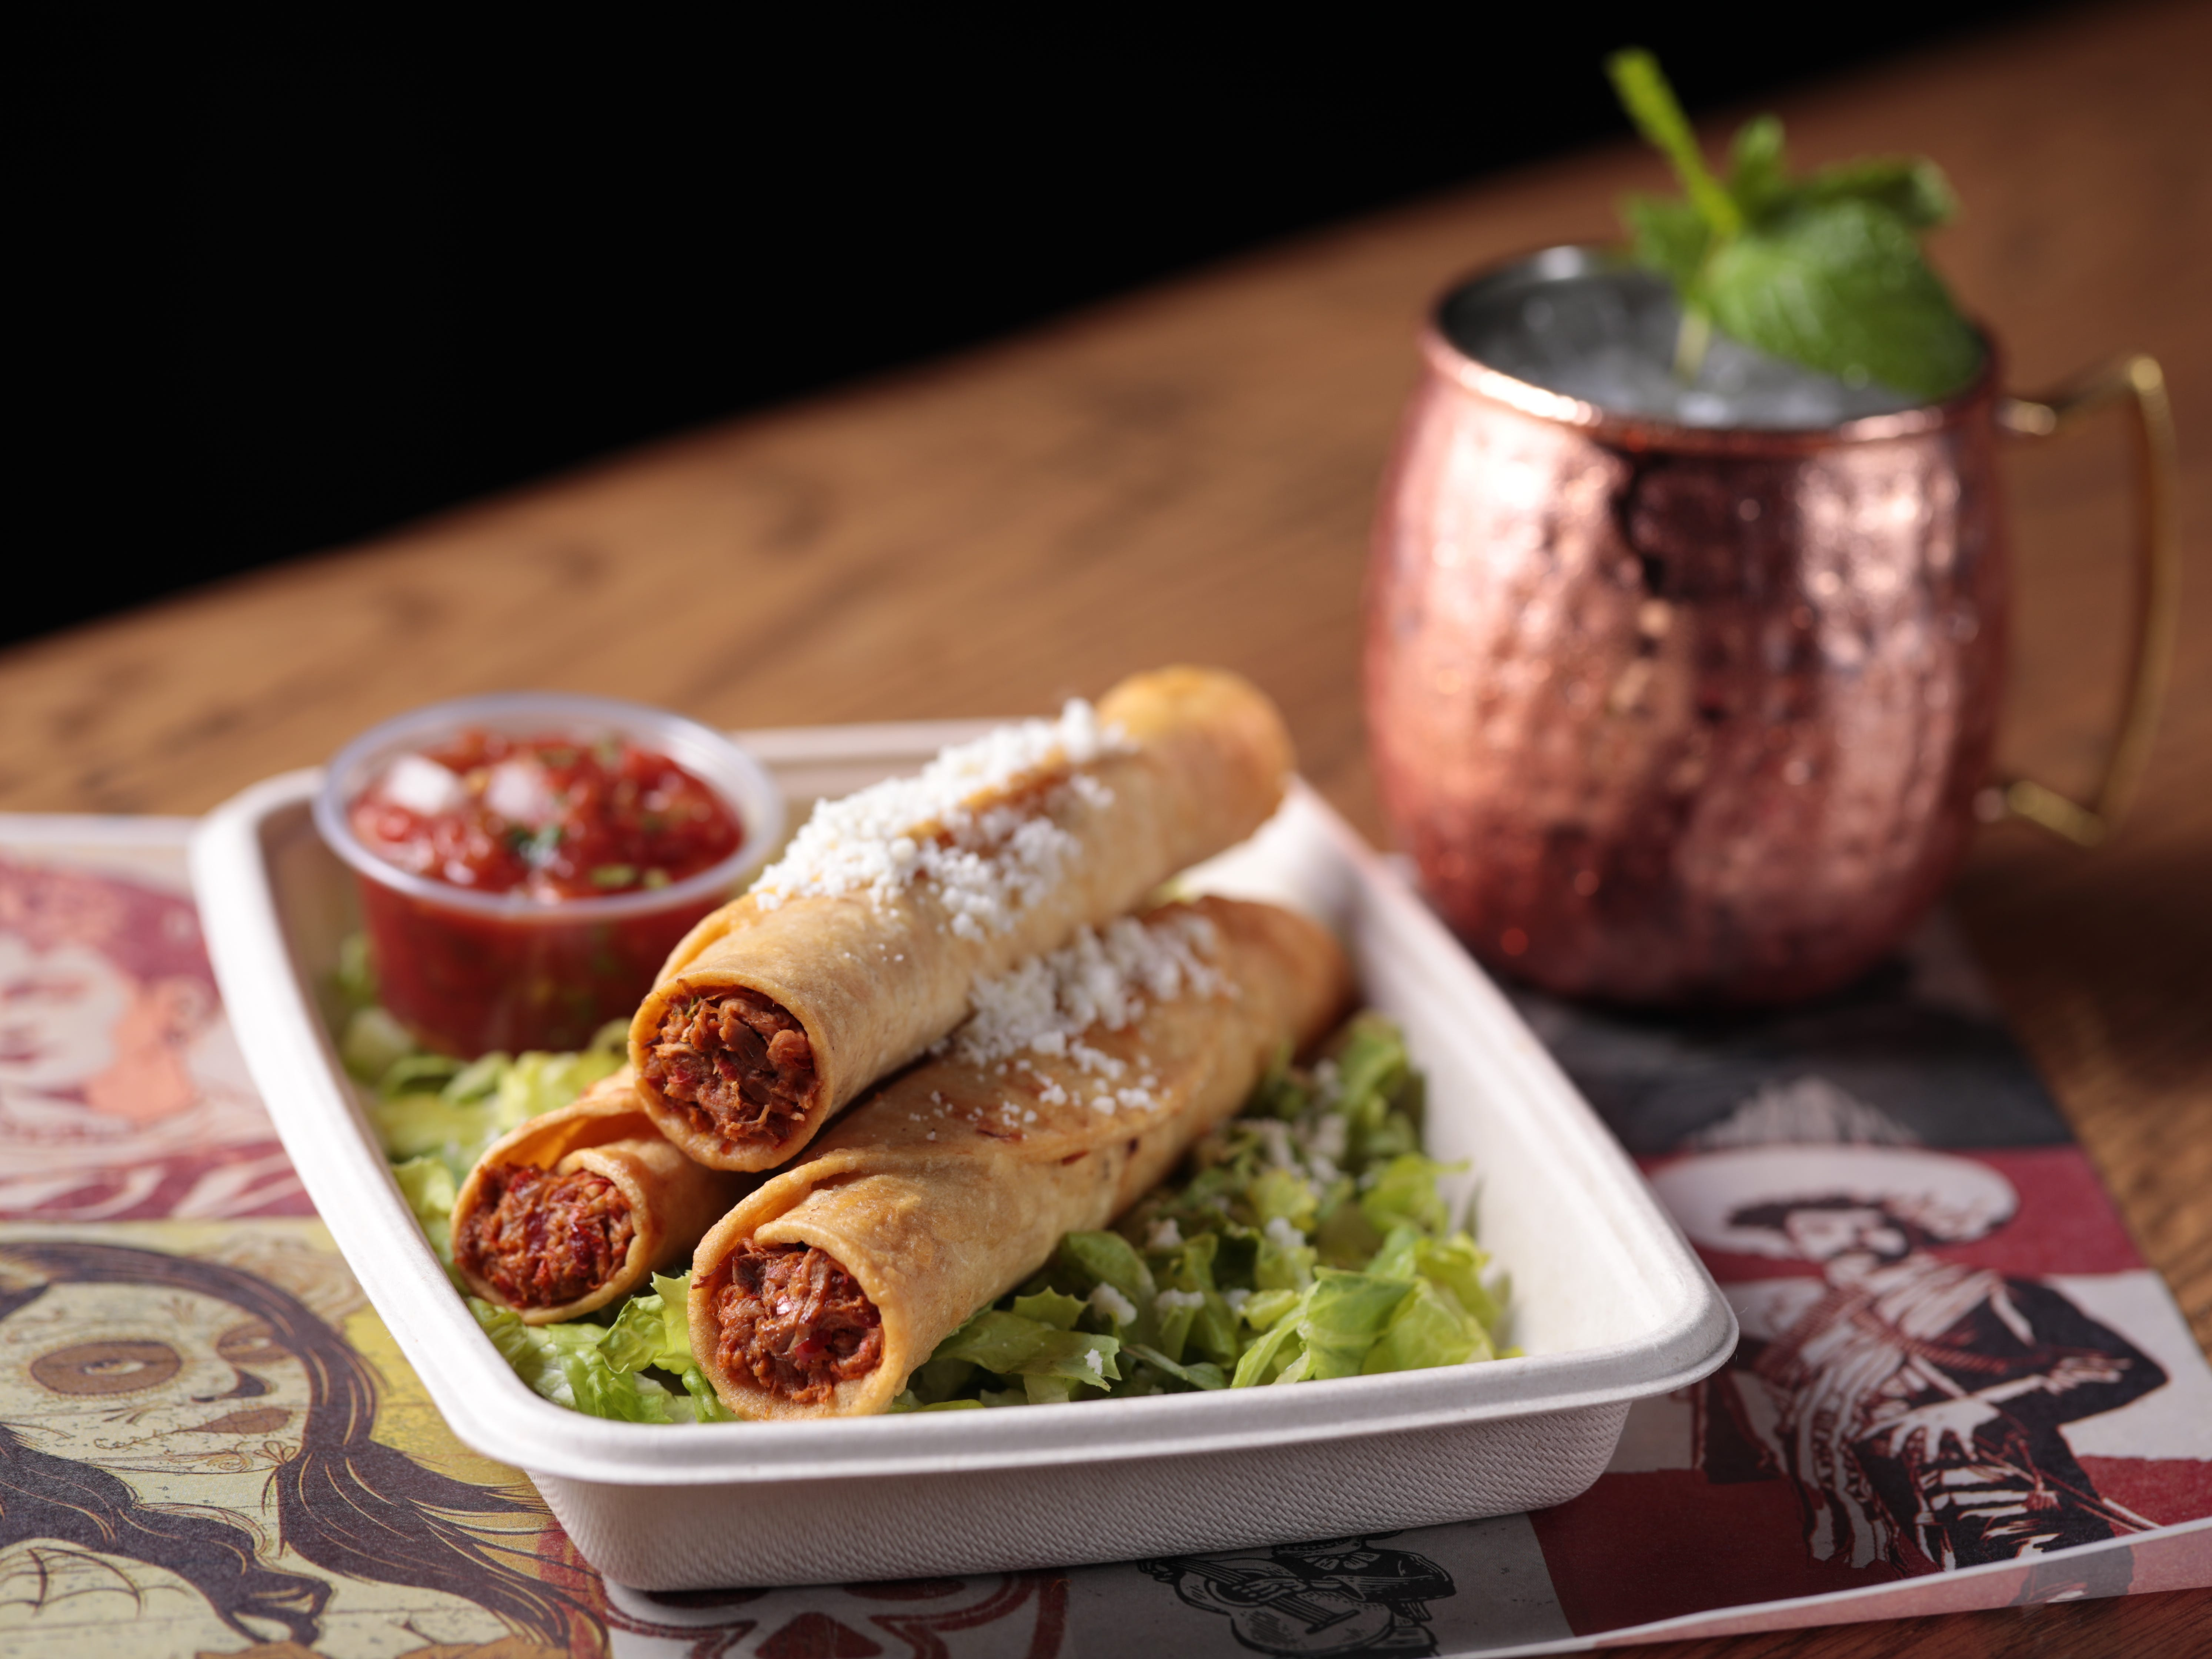 The taquitos at George Lopez's Chingon Kitchen are stuffed with beef machaca and served with avocado salsa, cotija cheese and crema.